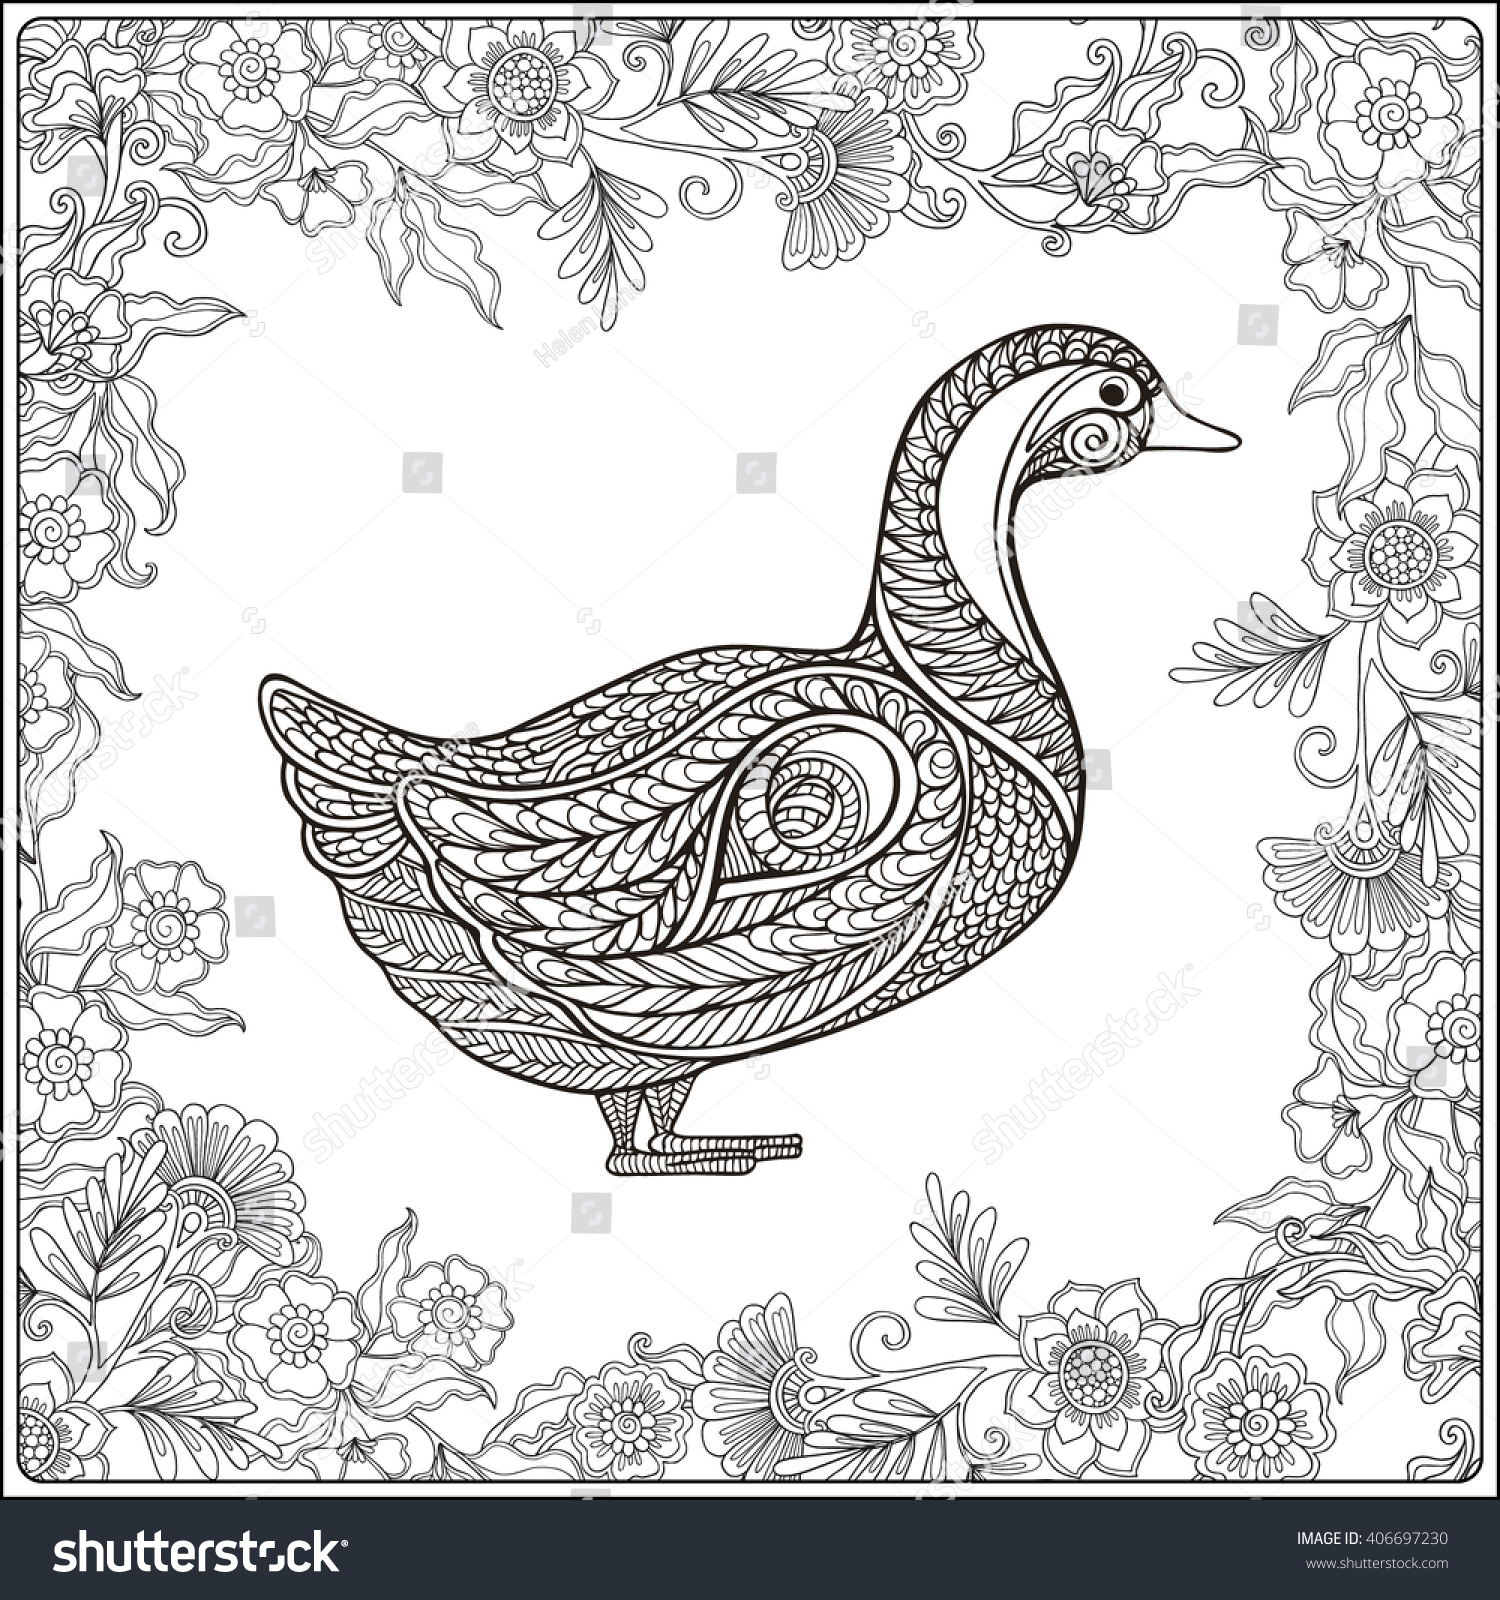 Wood Duck Coloring Pages For Adults Wood Best Free